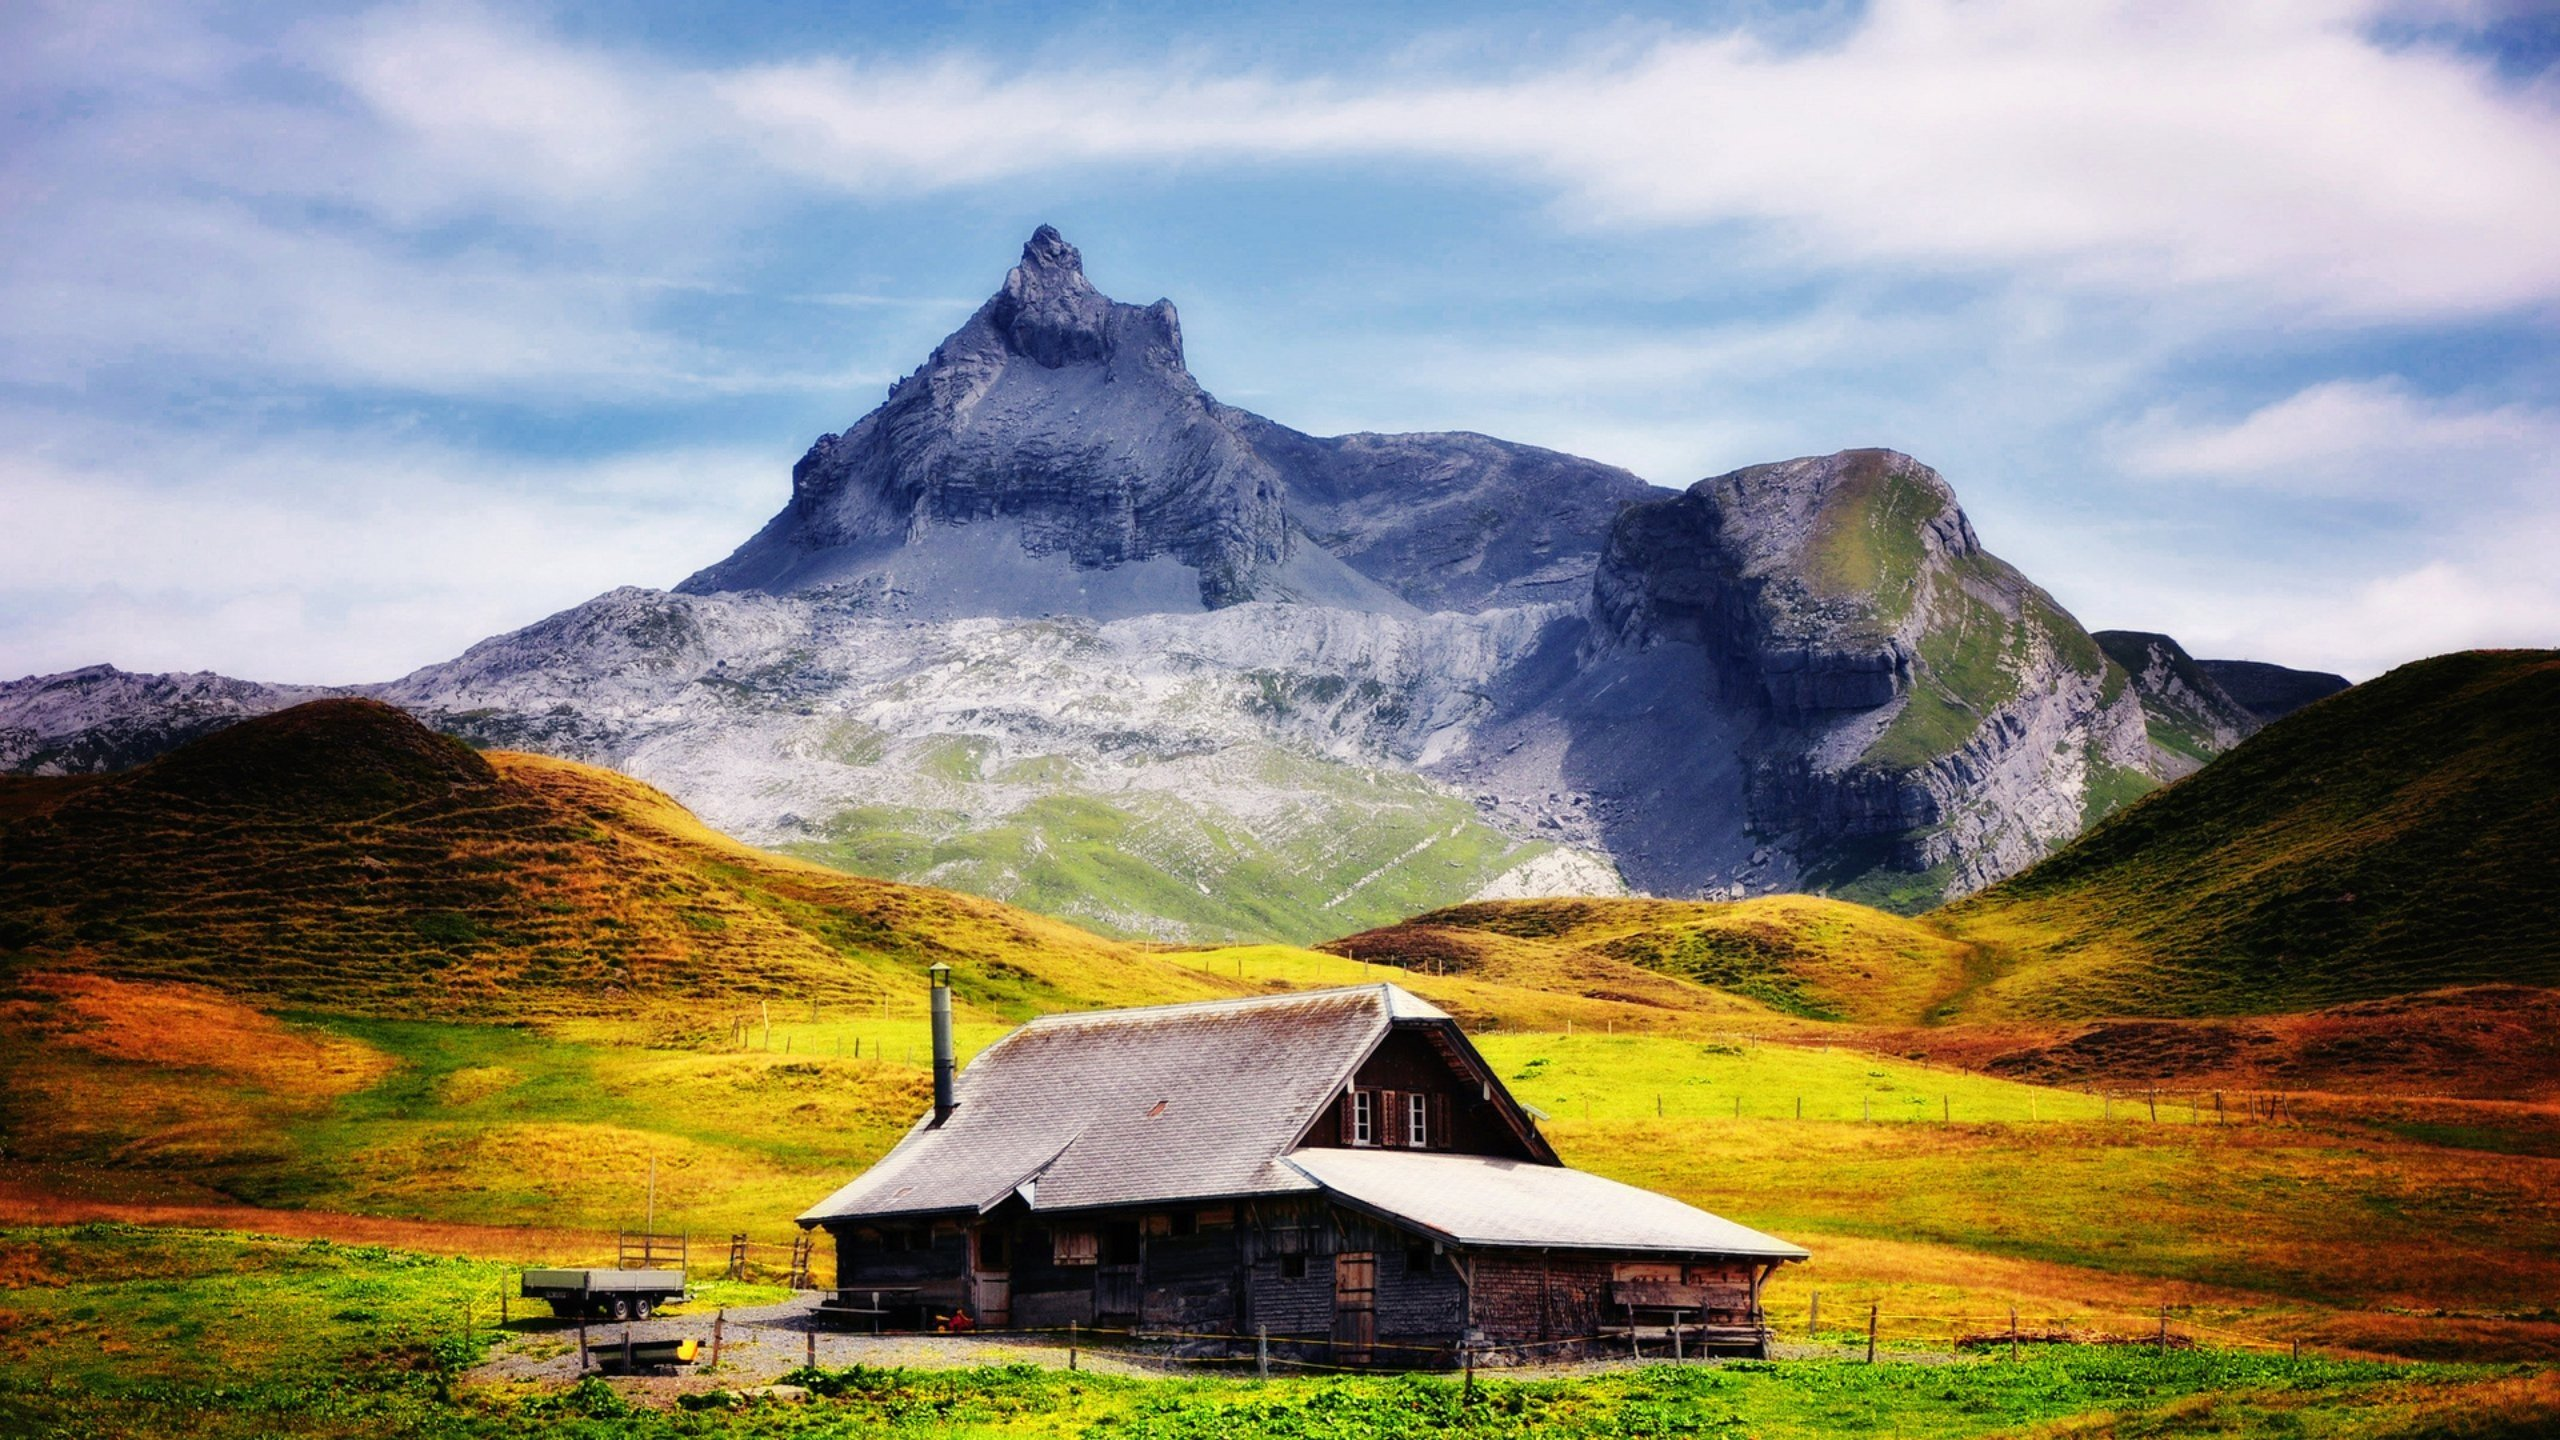 Loneliness  Cabin  Landscape  Mountains  Villages Hd Wallpapers    Desktop And Mobile Images  U0026 Photos